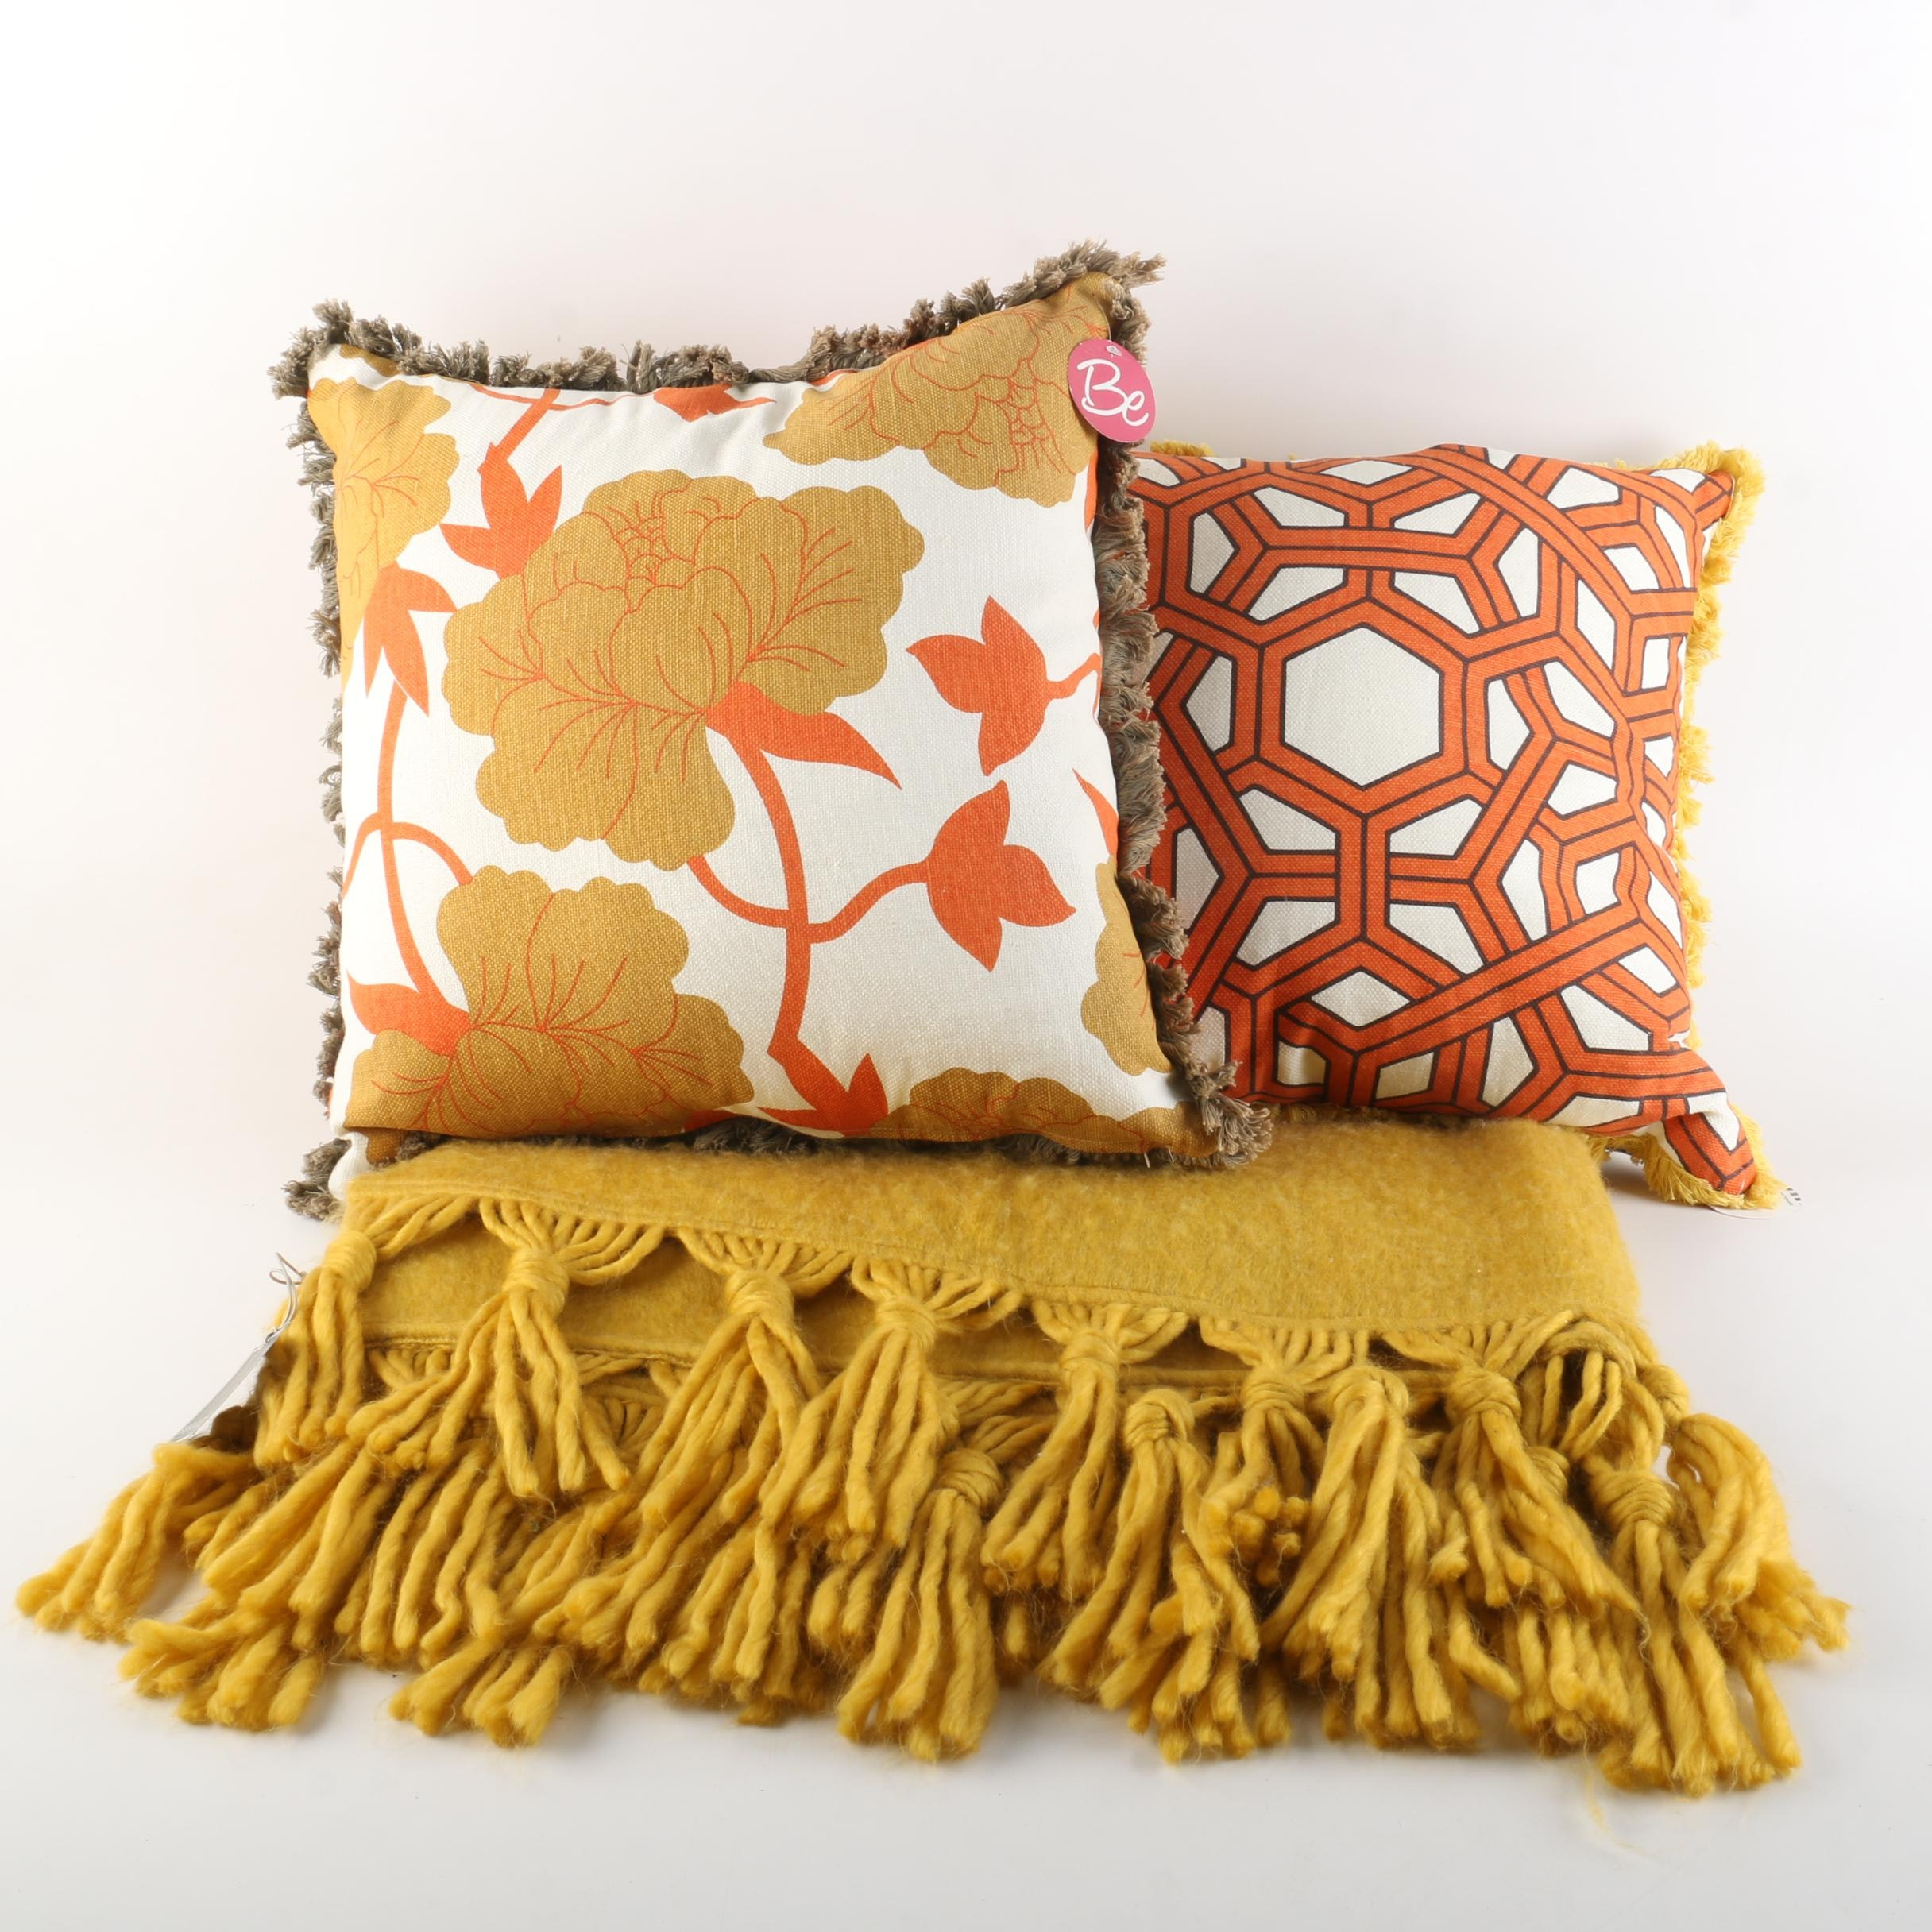 Pairing of Decorative Throw Pillows and Woven Decorative Throw